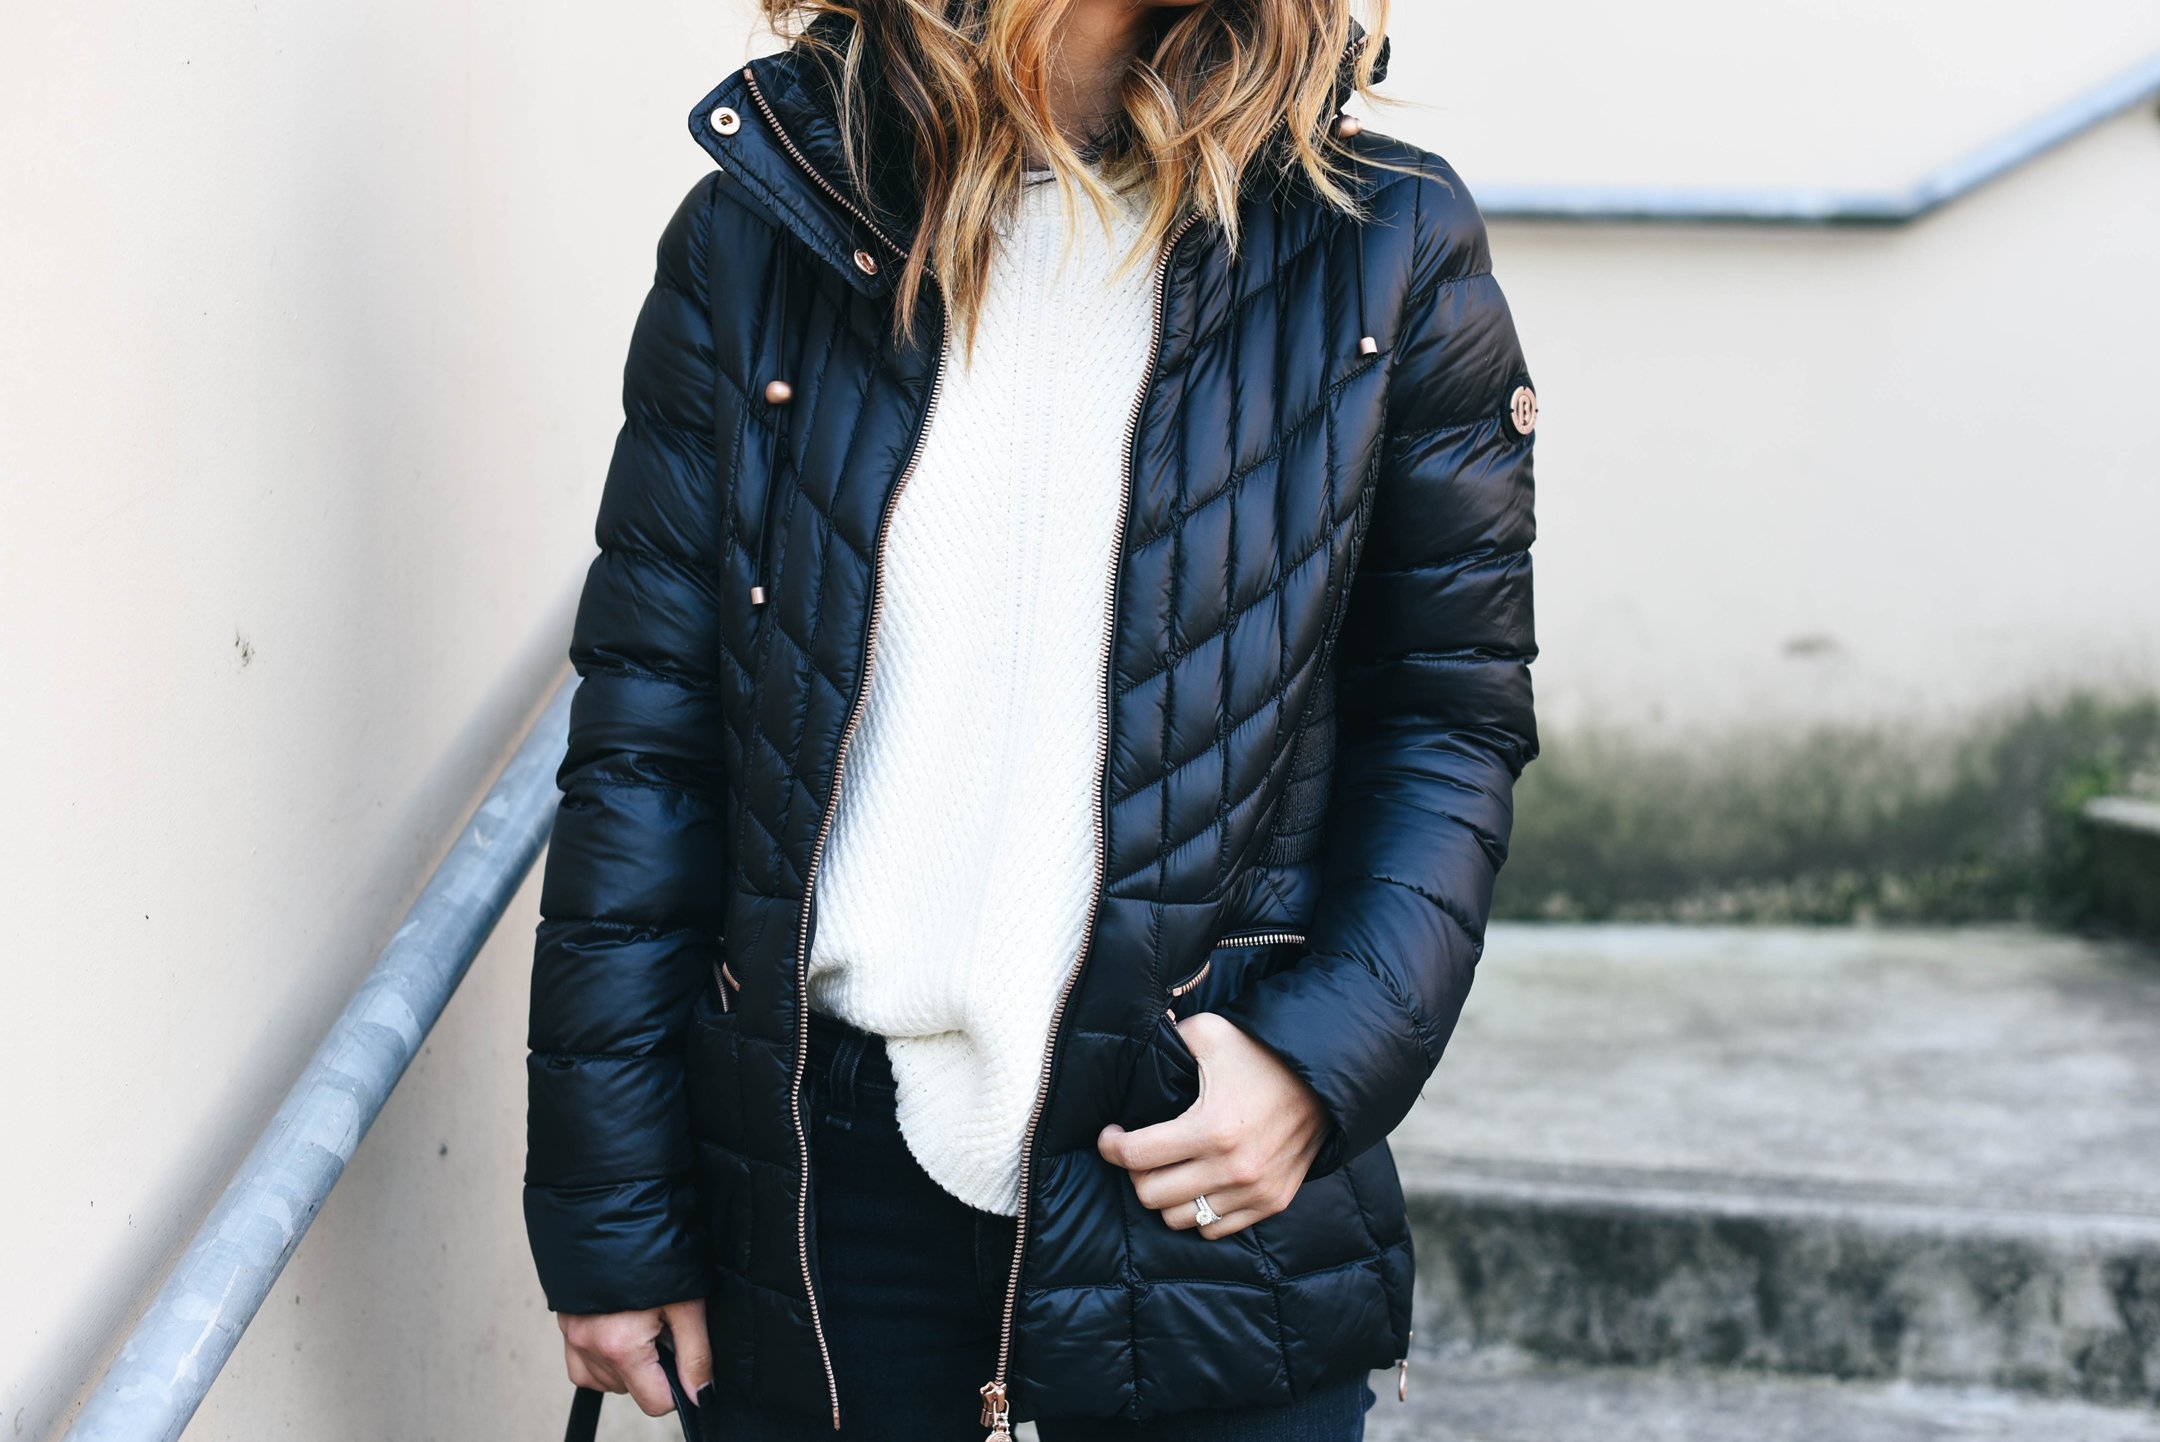 crystalin-marie-wearing-bernardo-black-packable-jacket-with-down-primaloft-fill